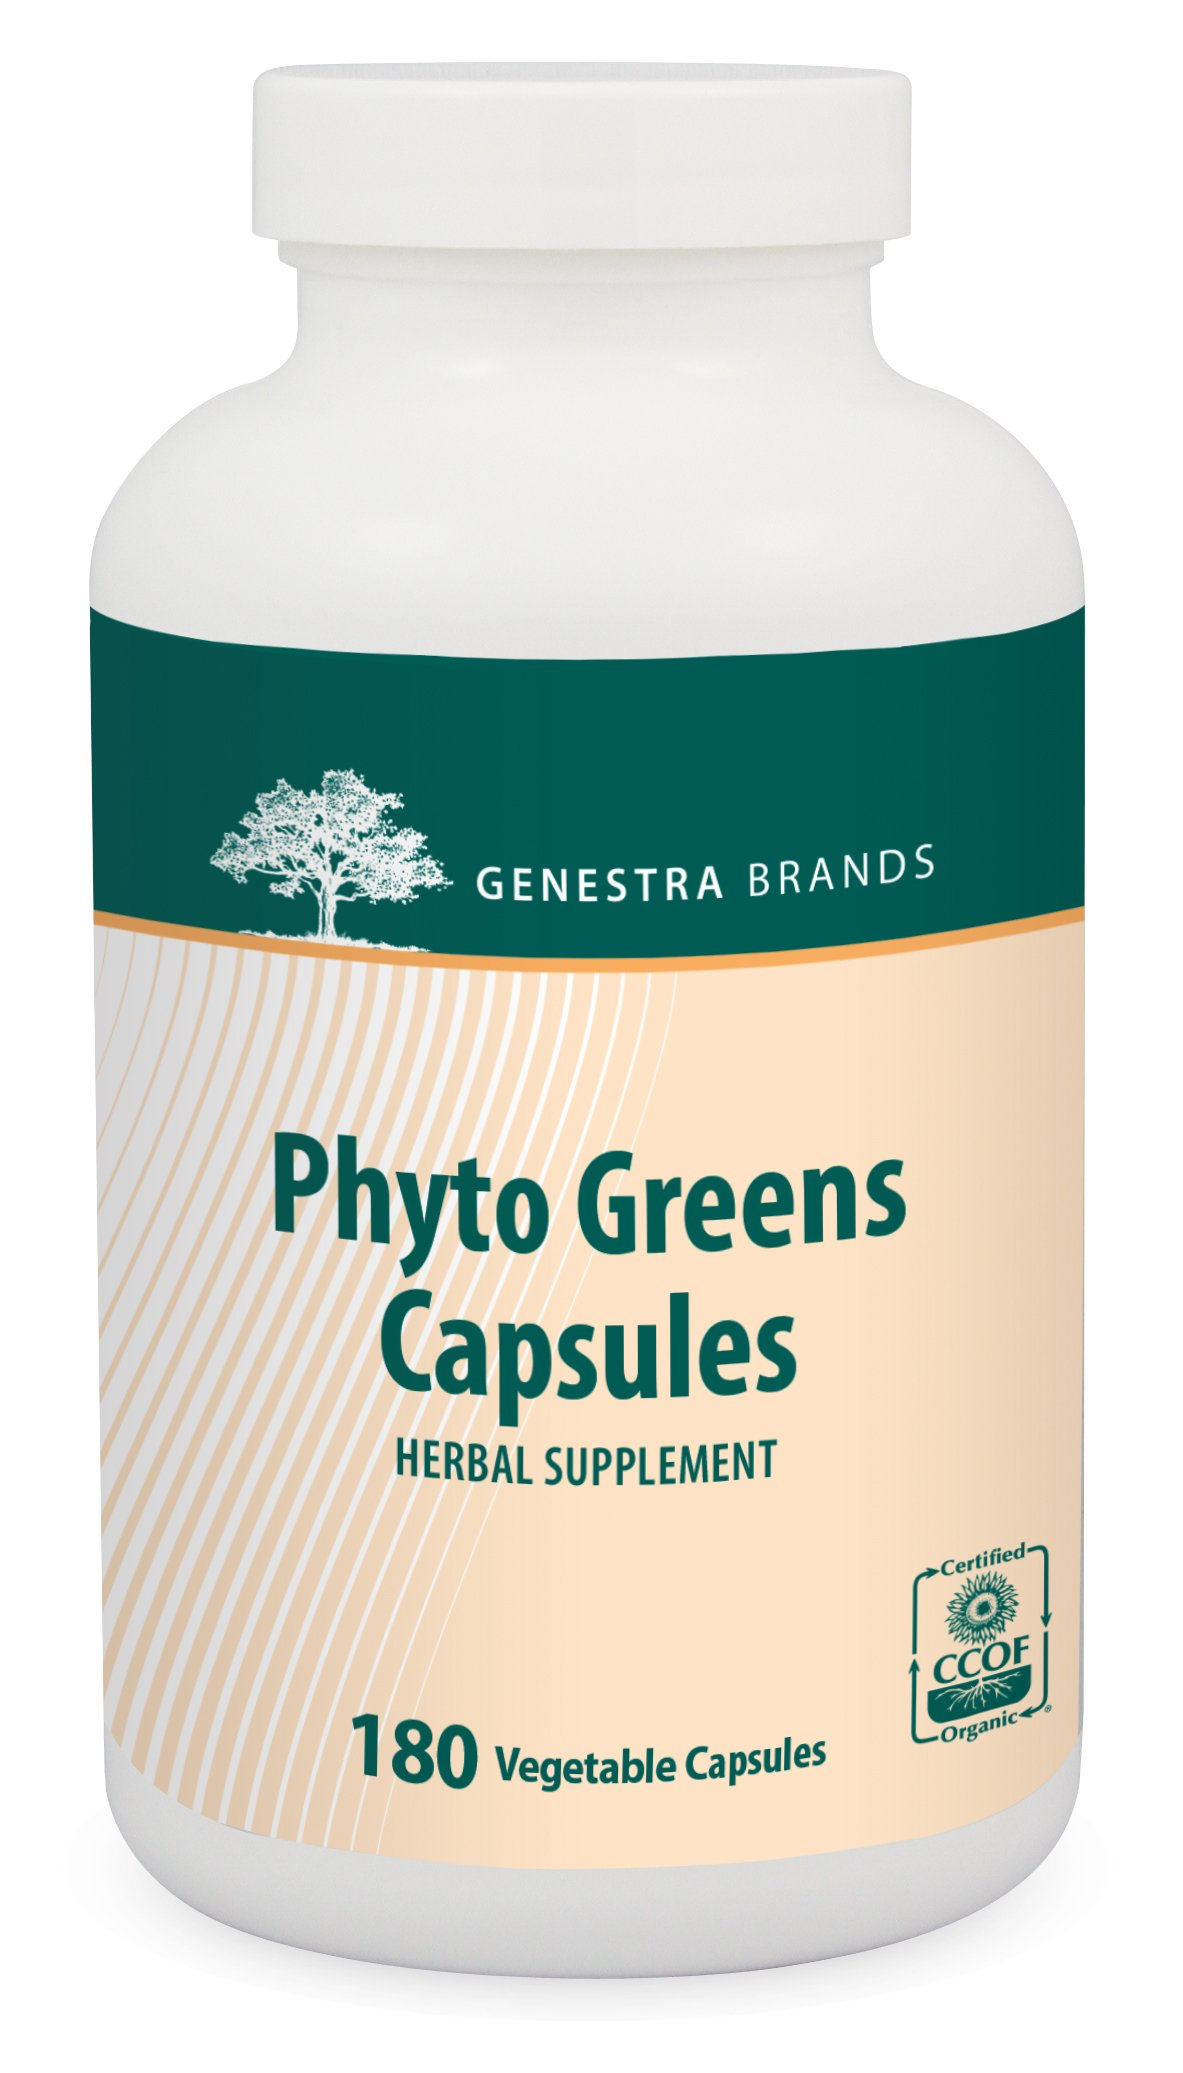 Genestra Brands - Phyto Greens Capsules - Vitamins, Dietary Fiber and Enzymes for Optimum Nutrition* - 180 Vegetable Capsules